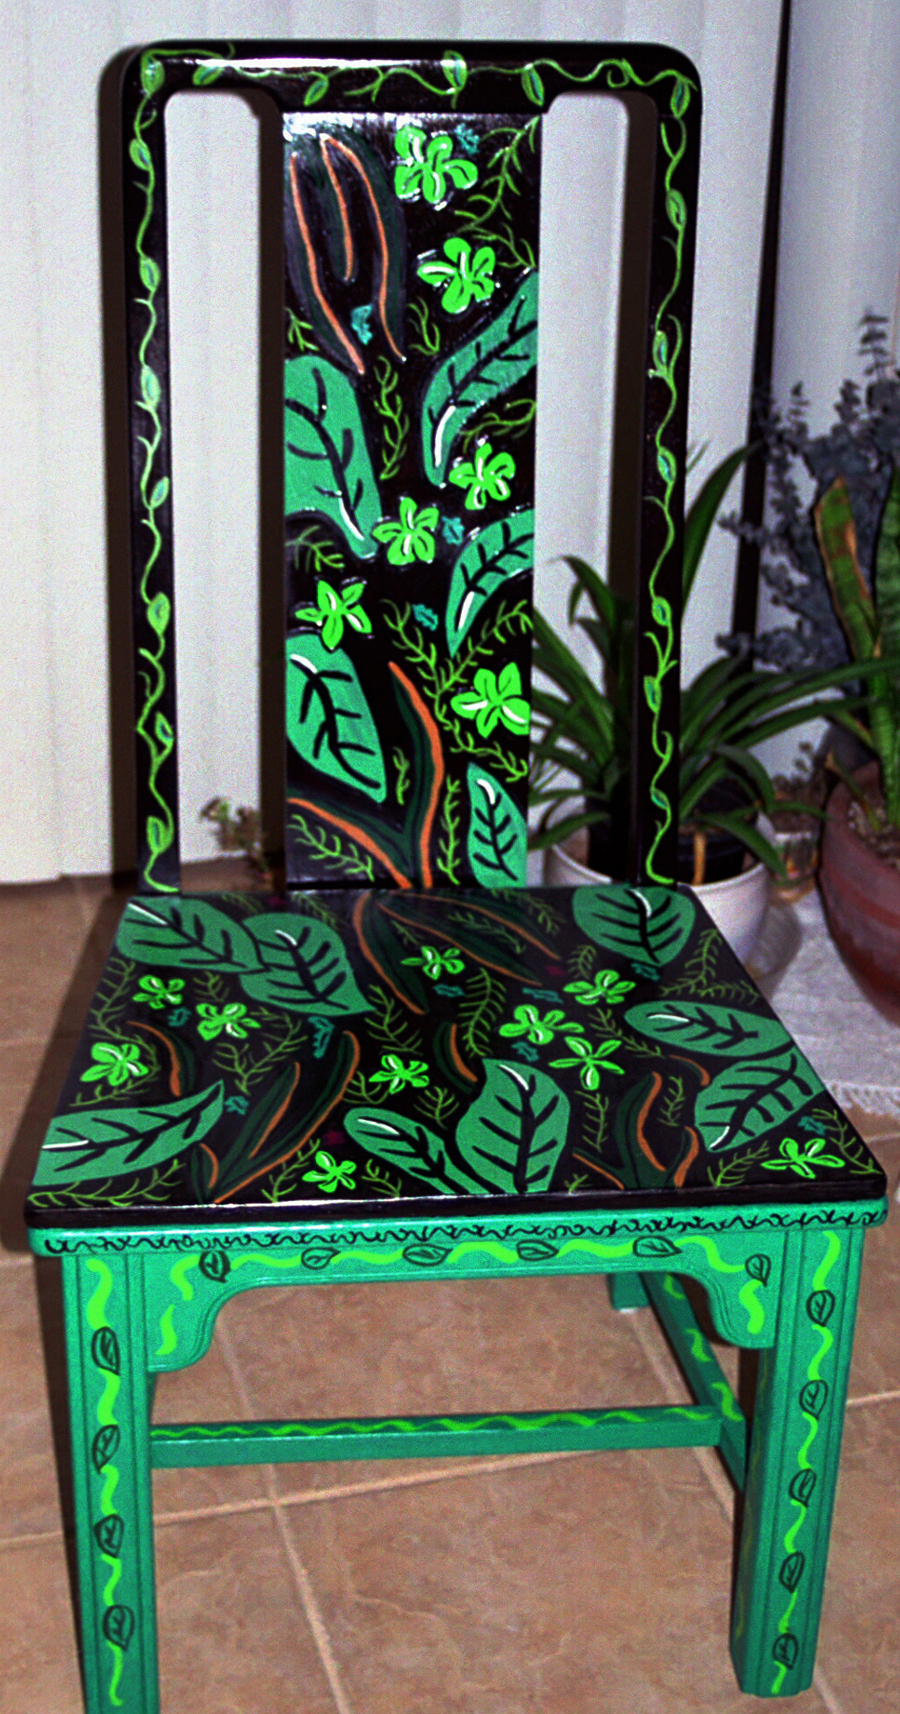 personal artwork painted chairs by carrie butler at